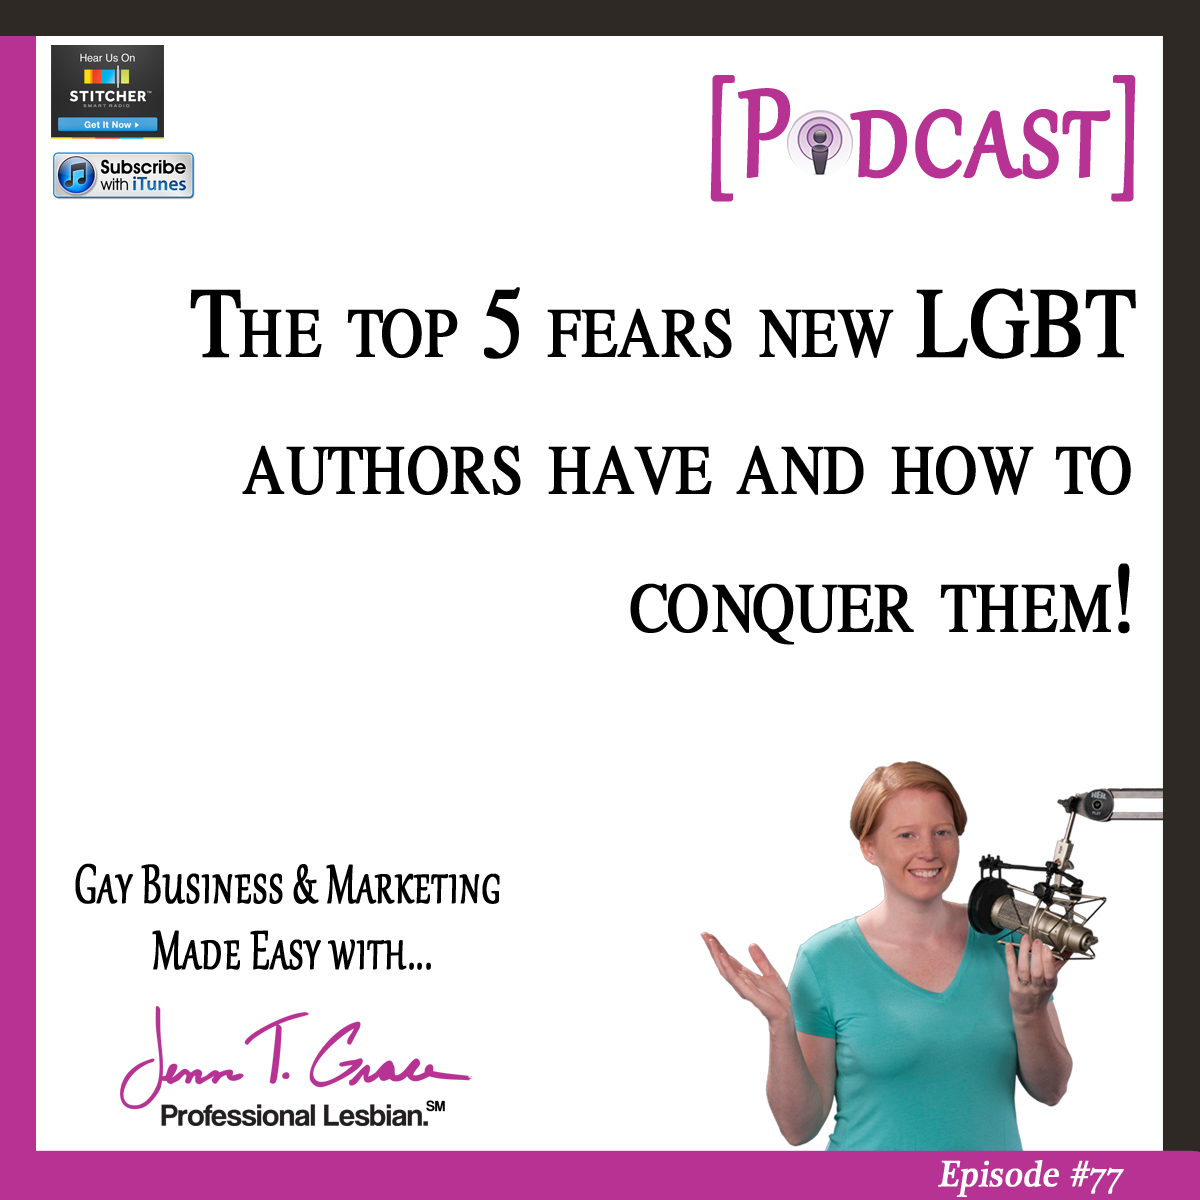 Personal Branding for the LGBTQ Professional - #77: The Top 5 Fears New LGBT Authors Have and How to Conquer Them!